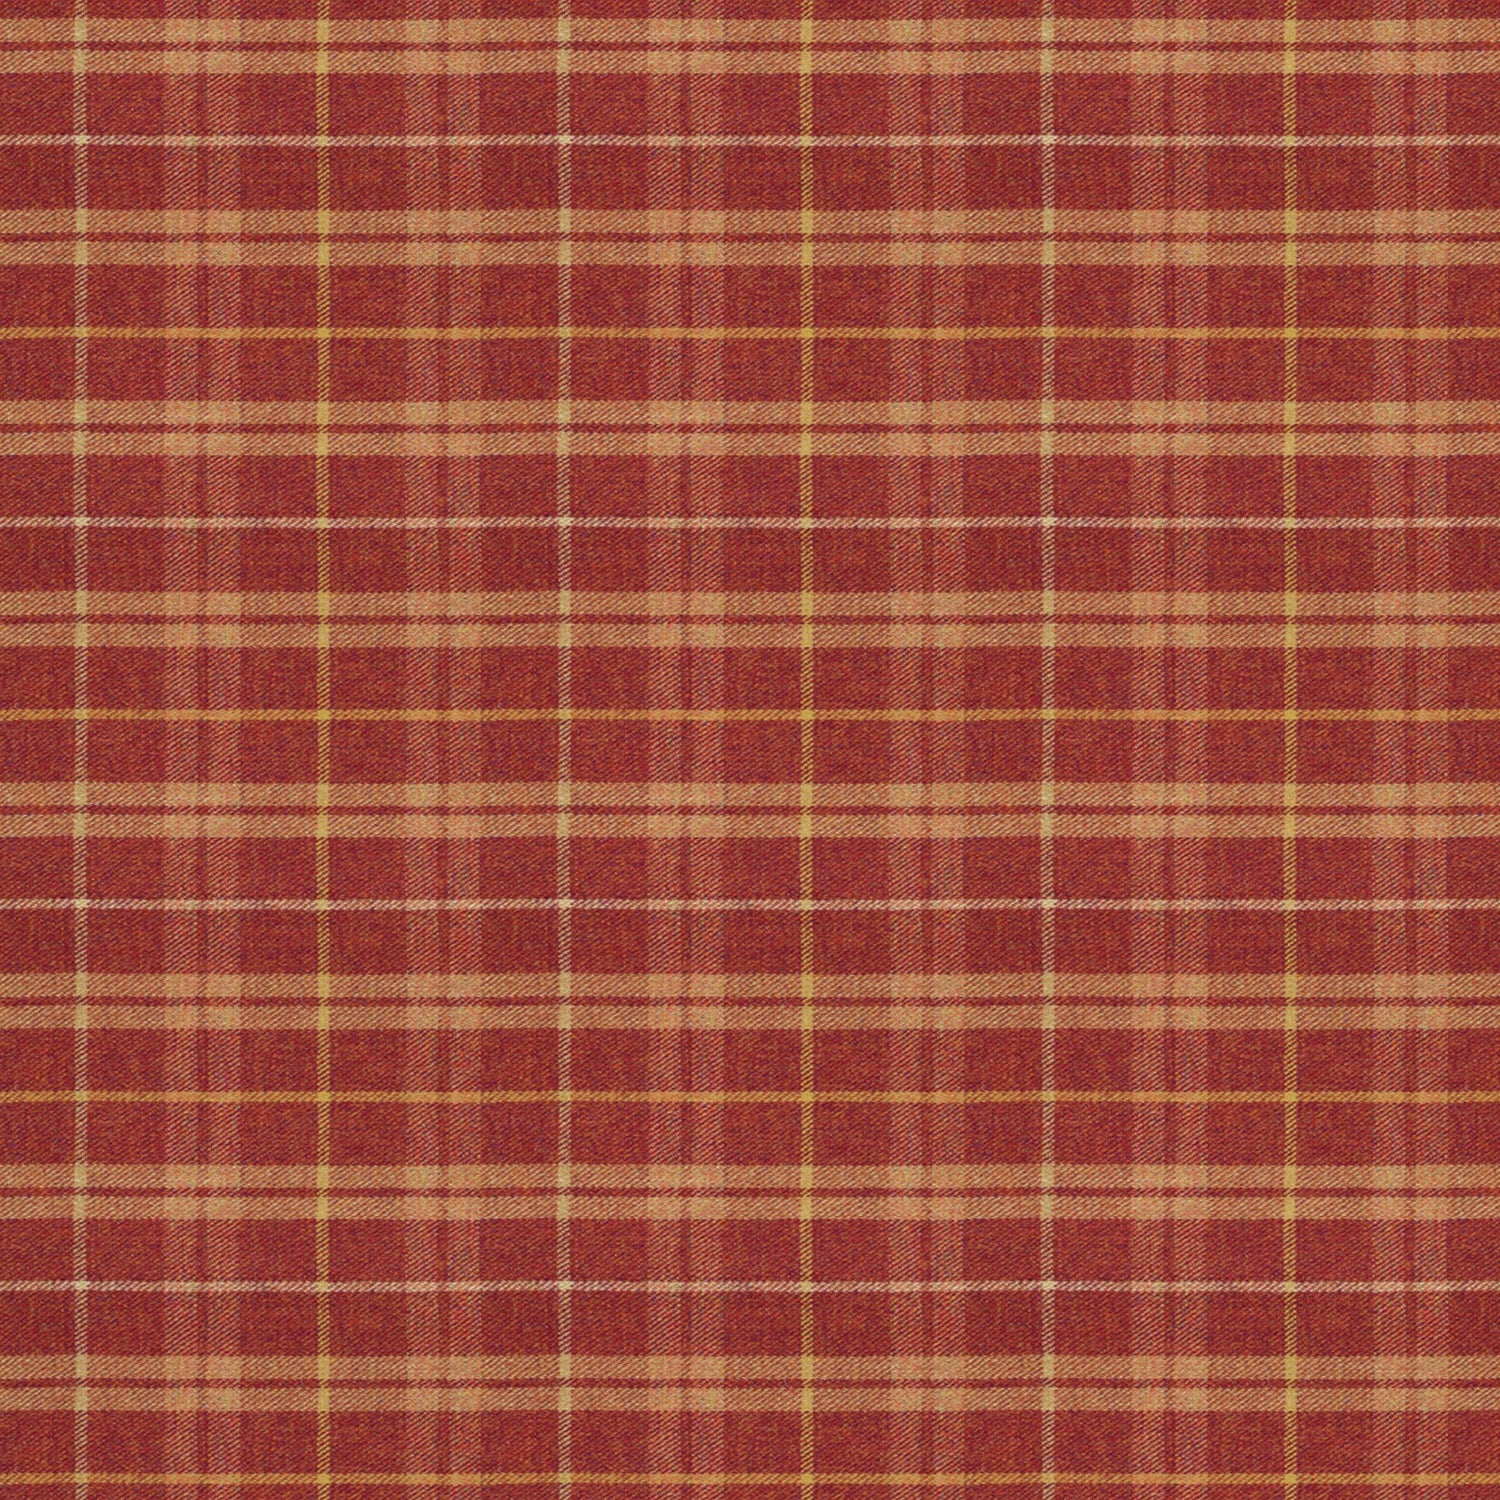 Fabric swatch of a red Scottish wool plaid check fabric for curtains and upholstery